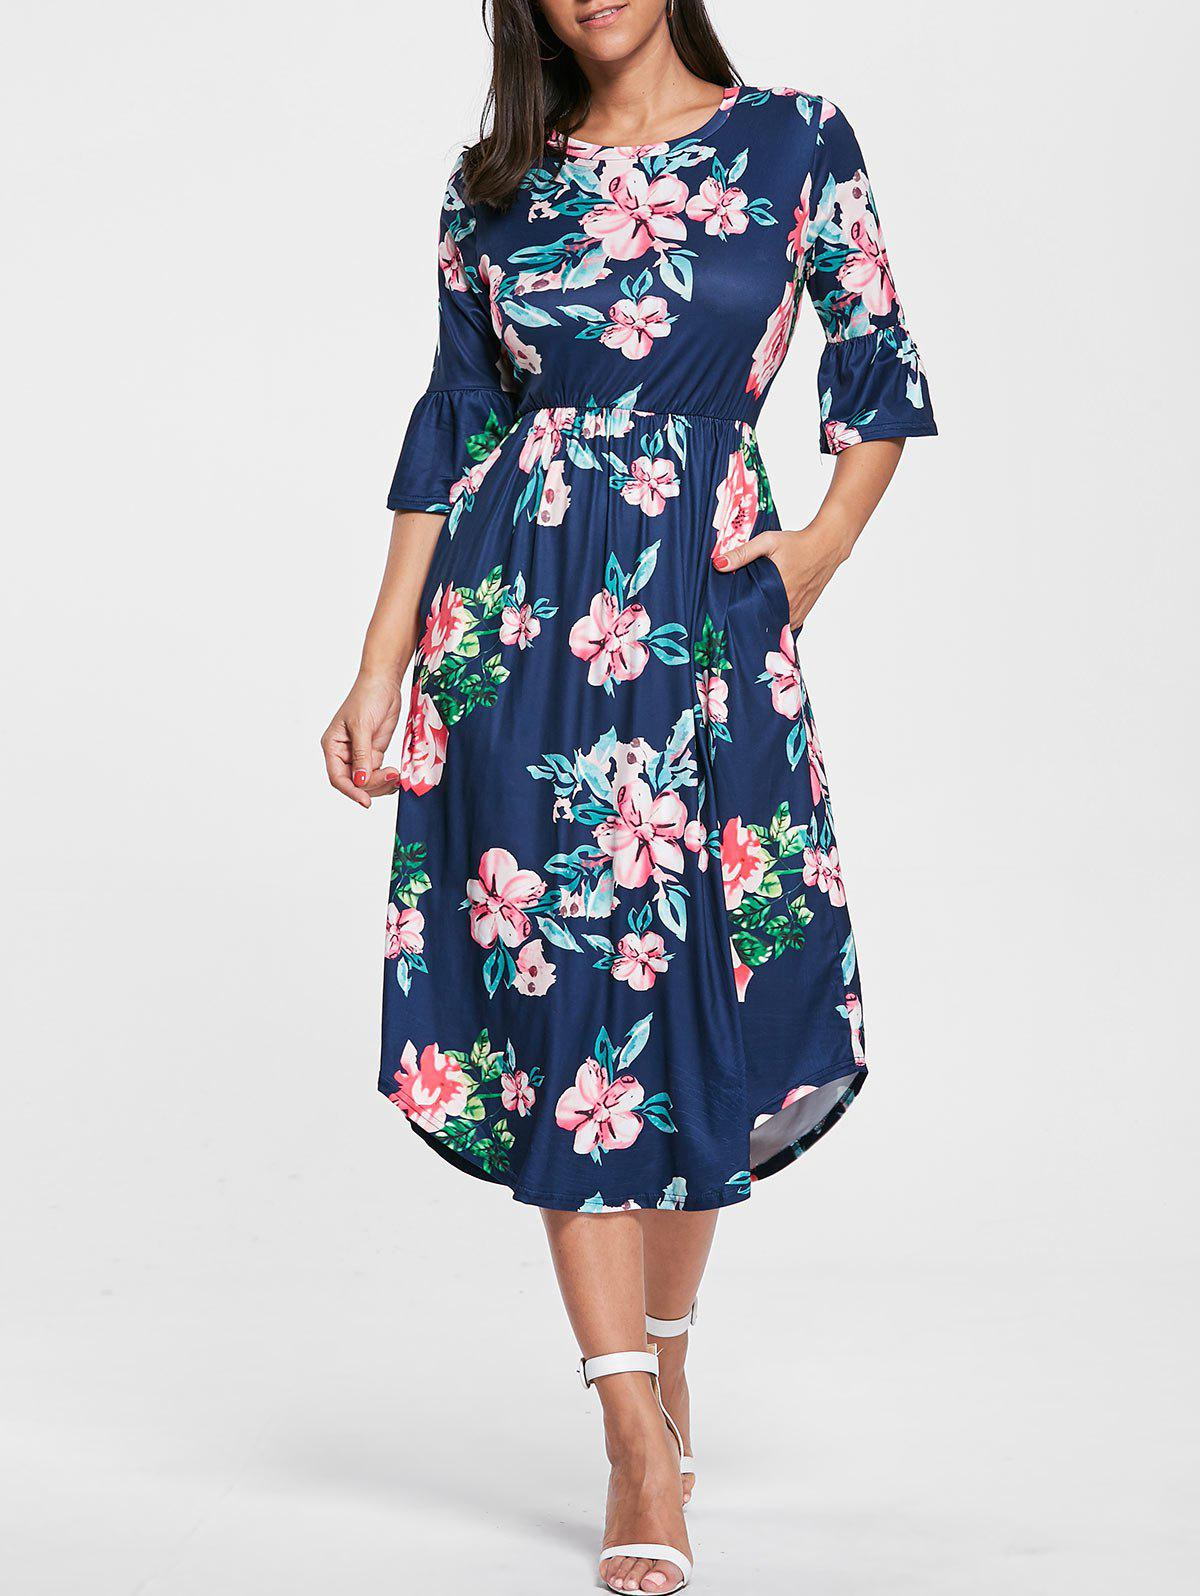 Floral Print Bell Sleeve Pocket Dress - PURPLISH BLUE M